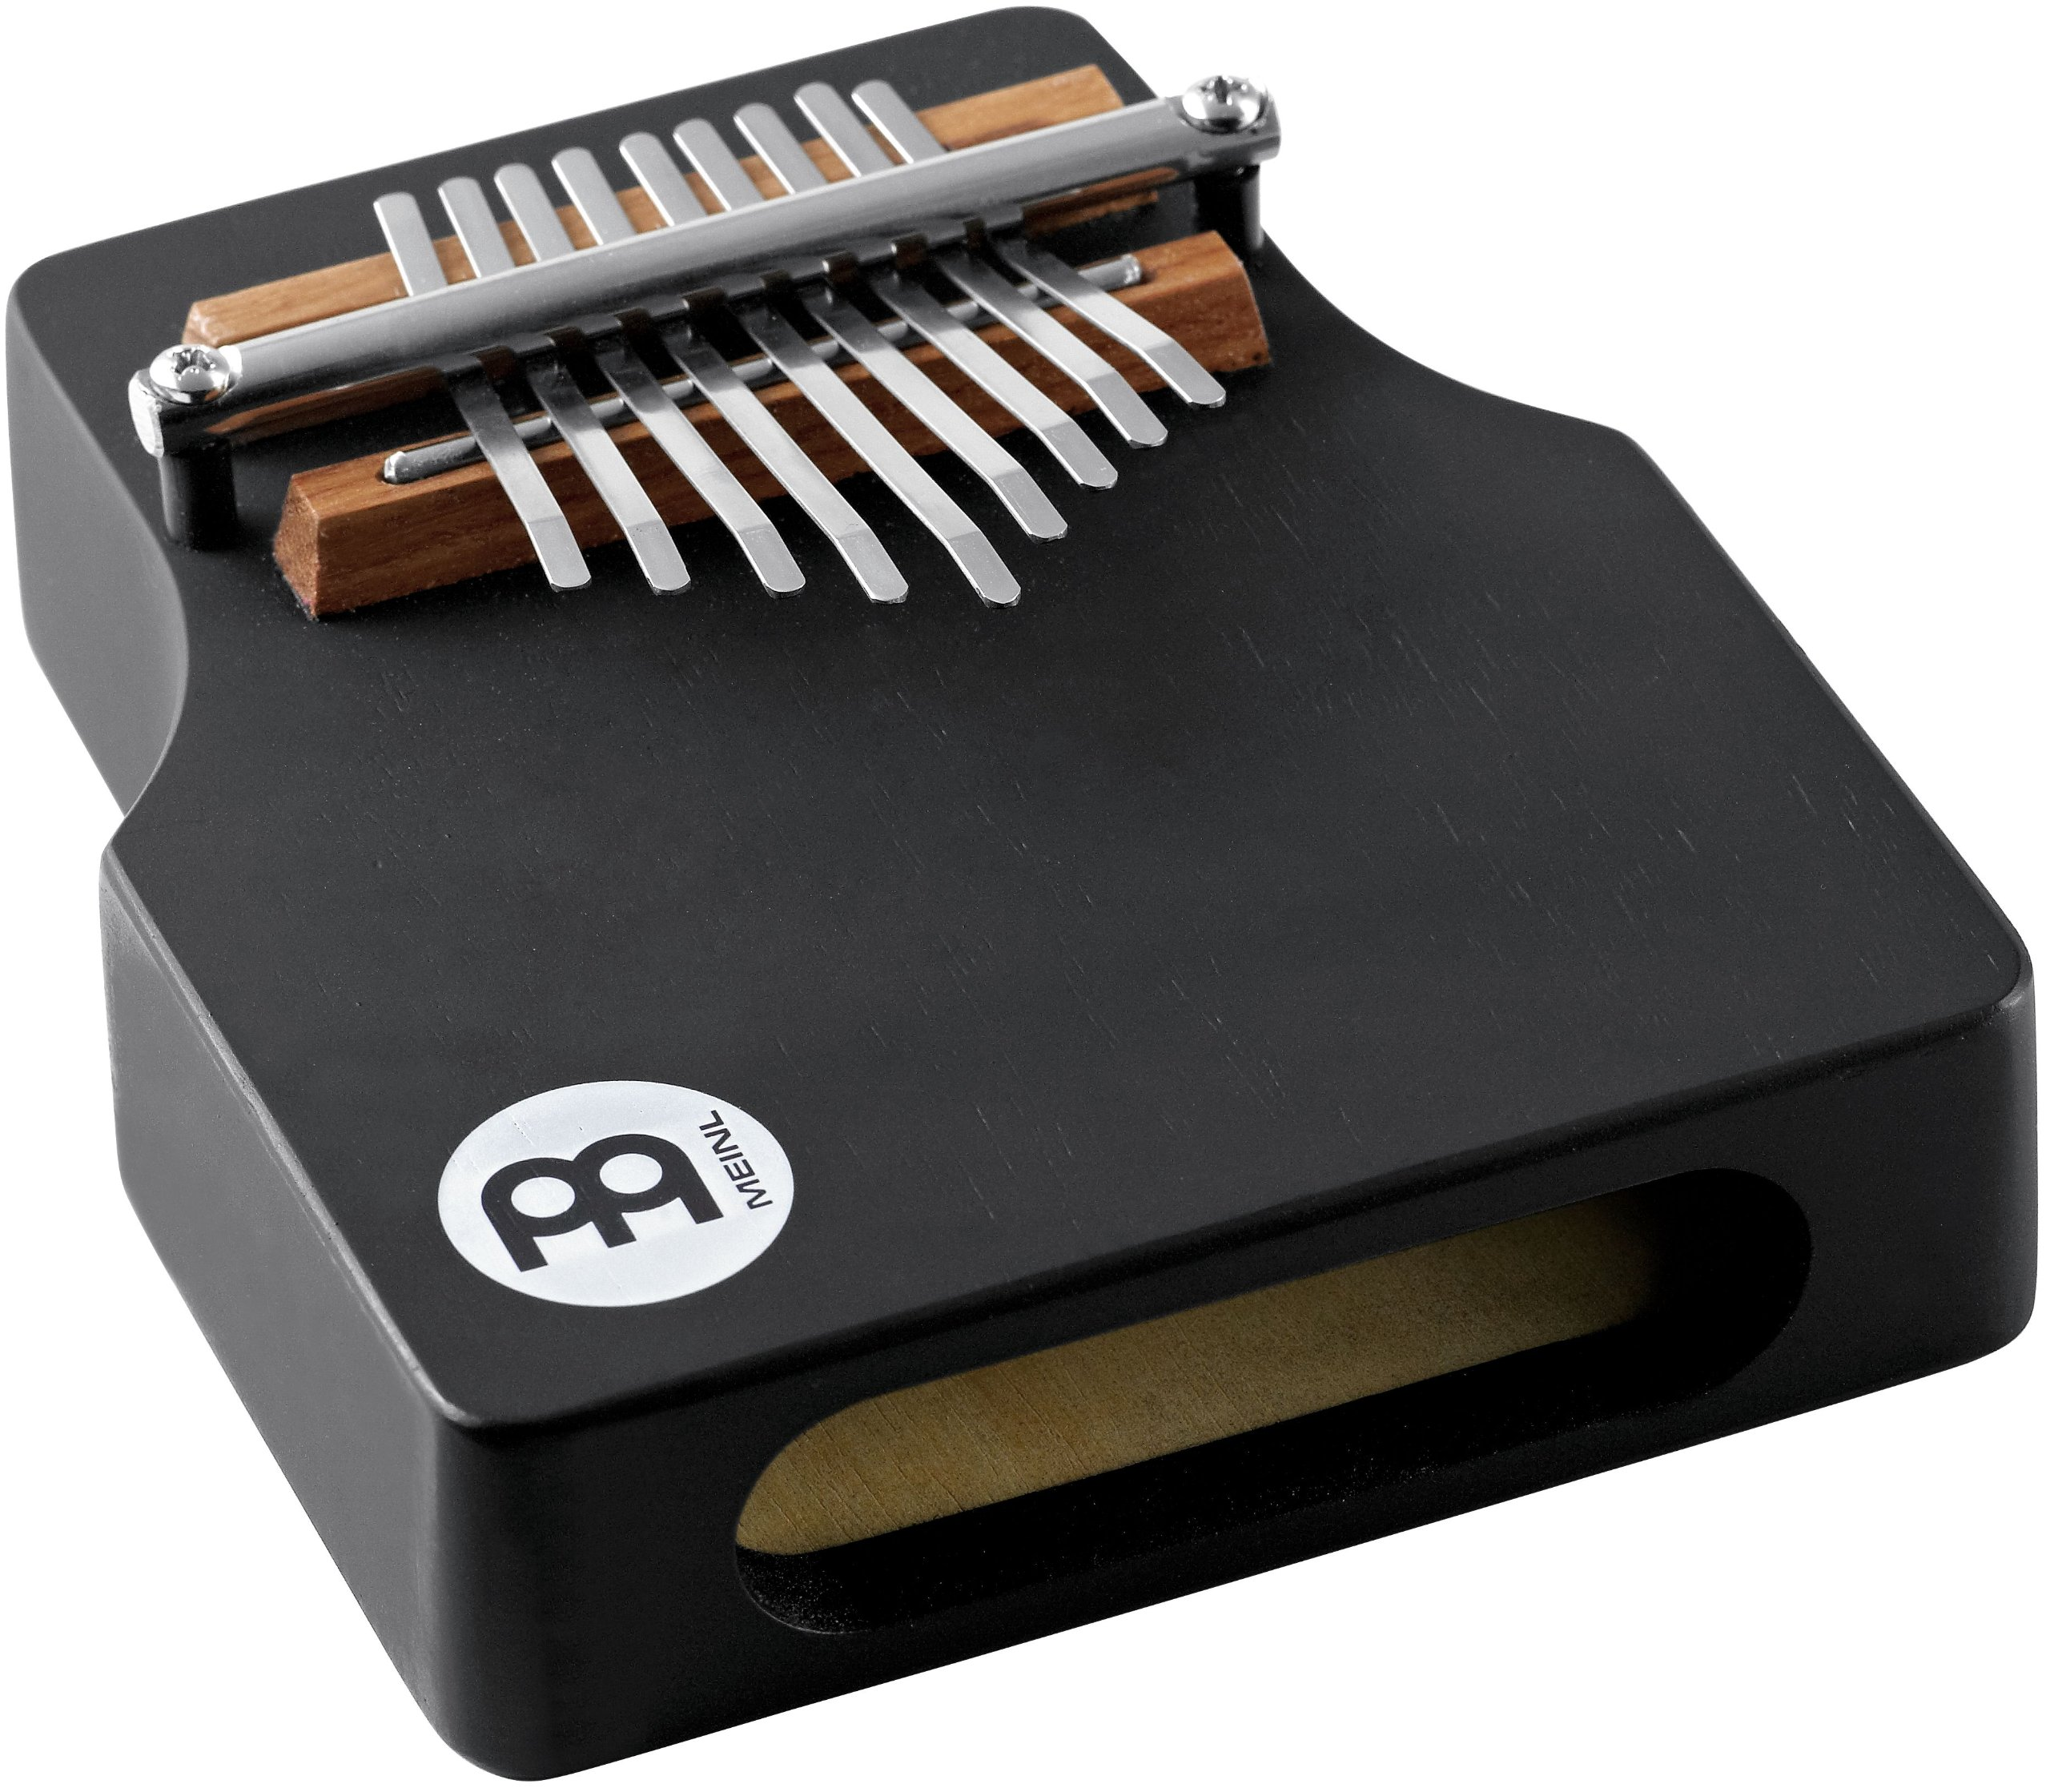 Meinl Percussion KA9WW-BK Wah Wah Effect Wood Kalimba, Black by Meinl Percussion